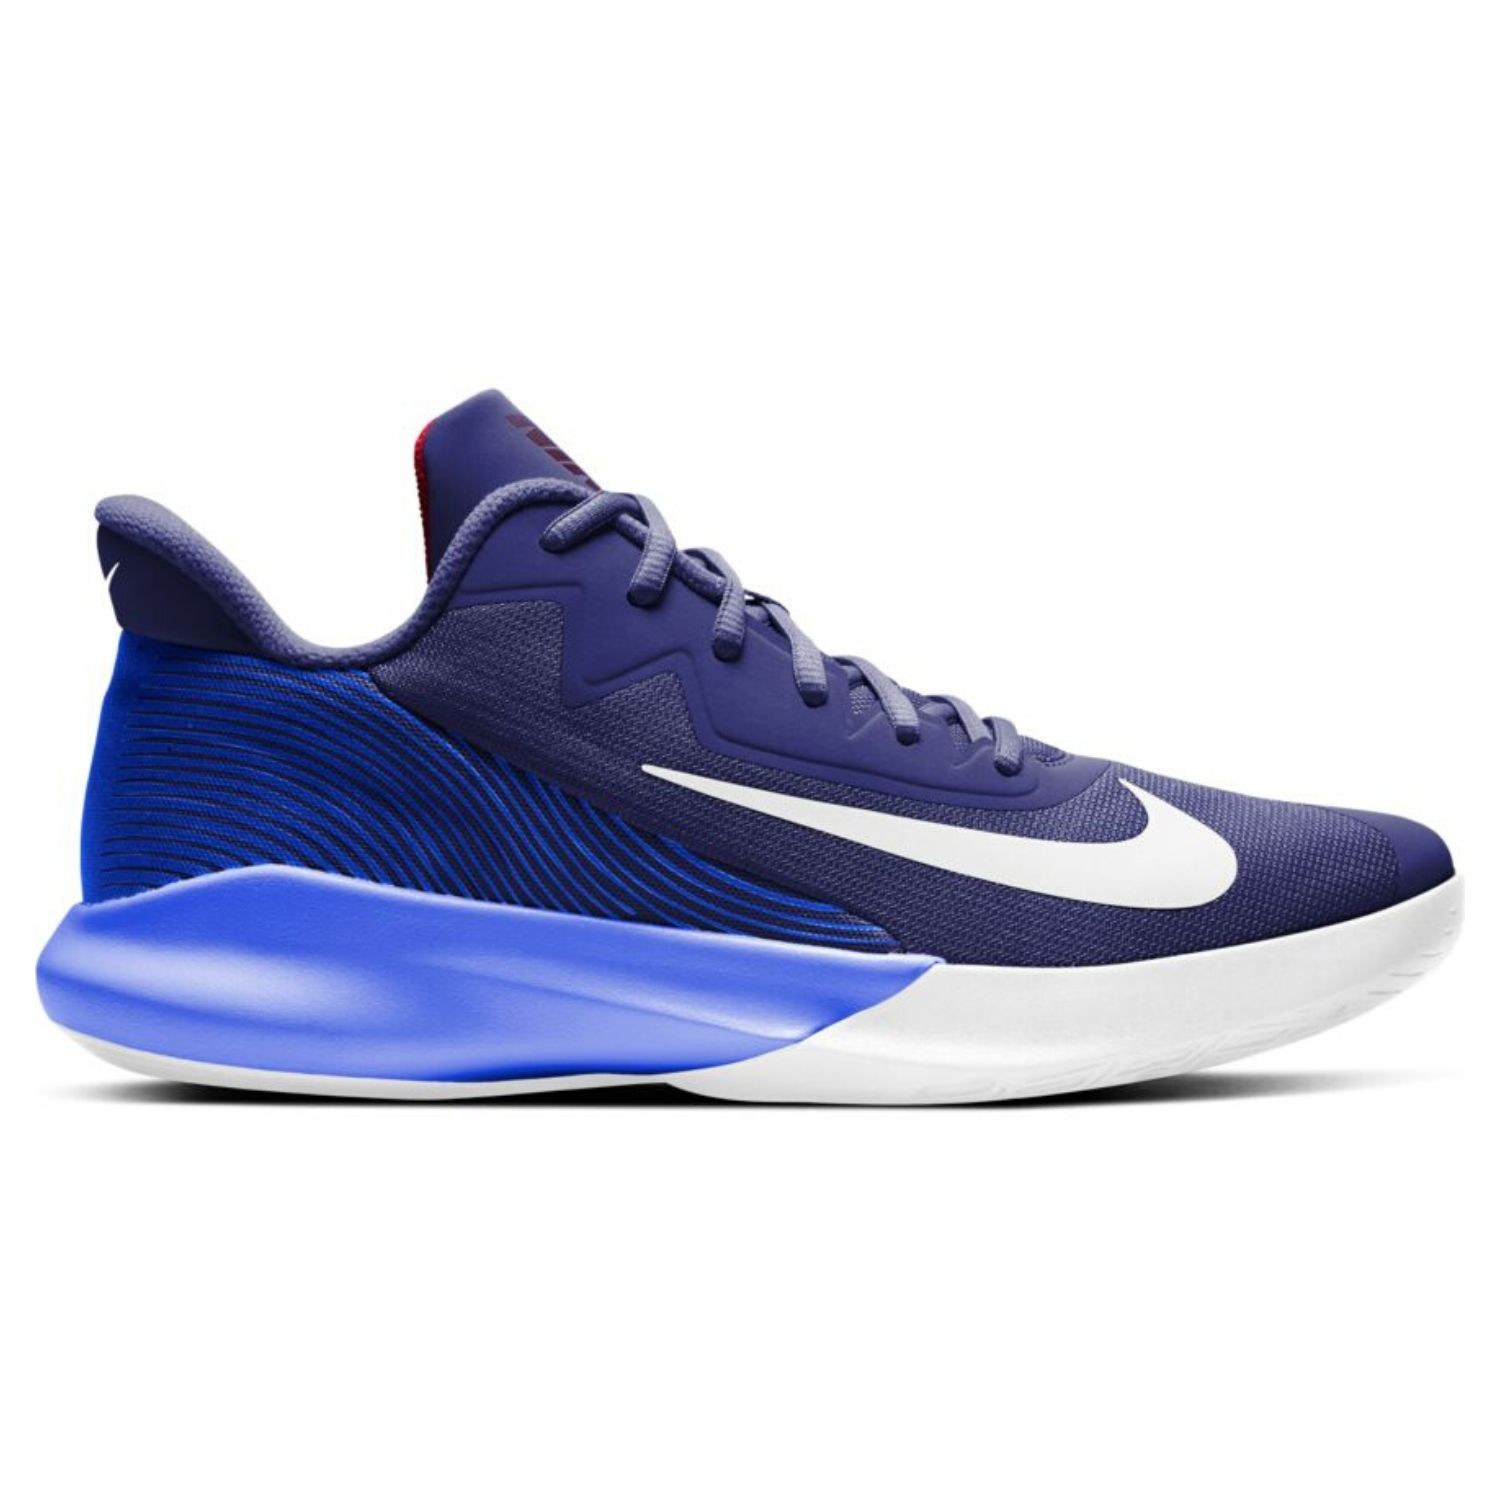 Obuv NIKE Precision IV Blue / White / Red Modrá 43